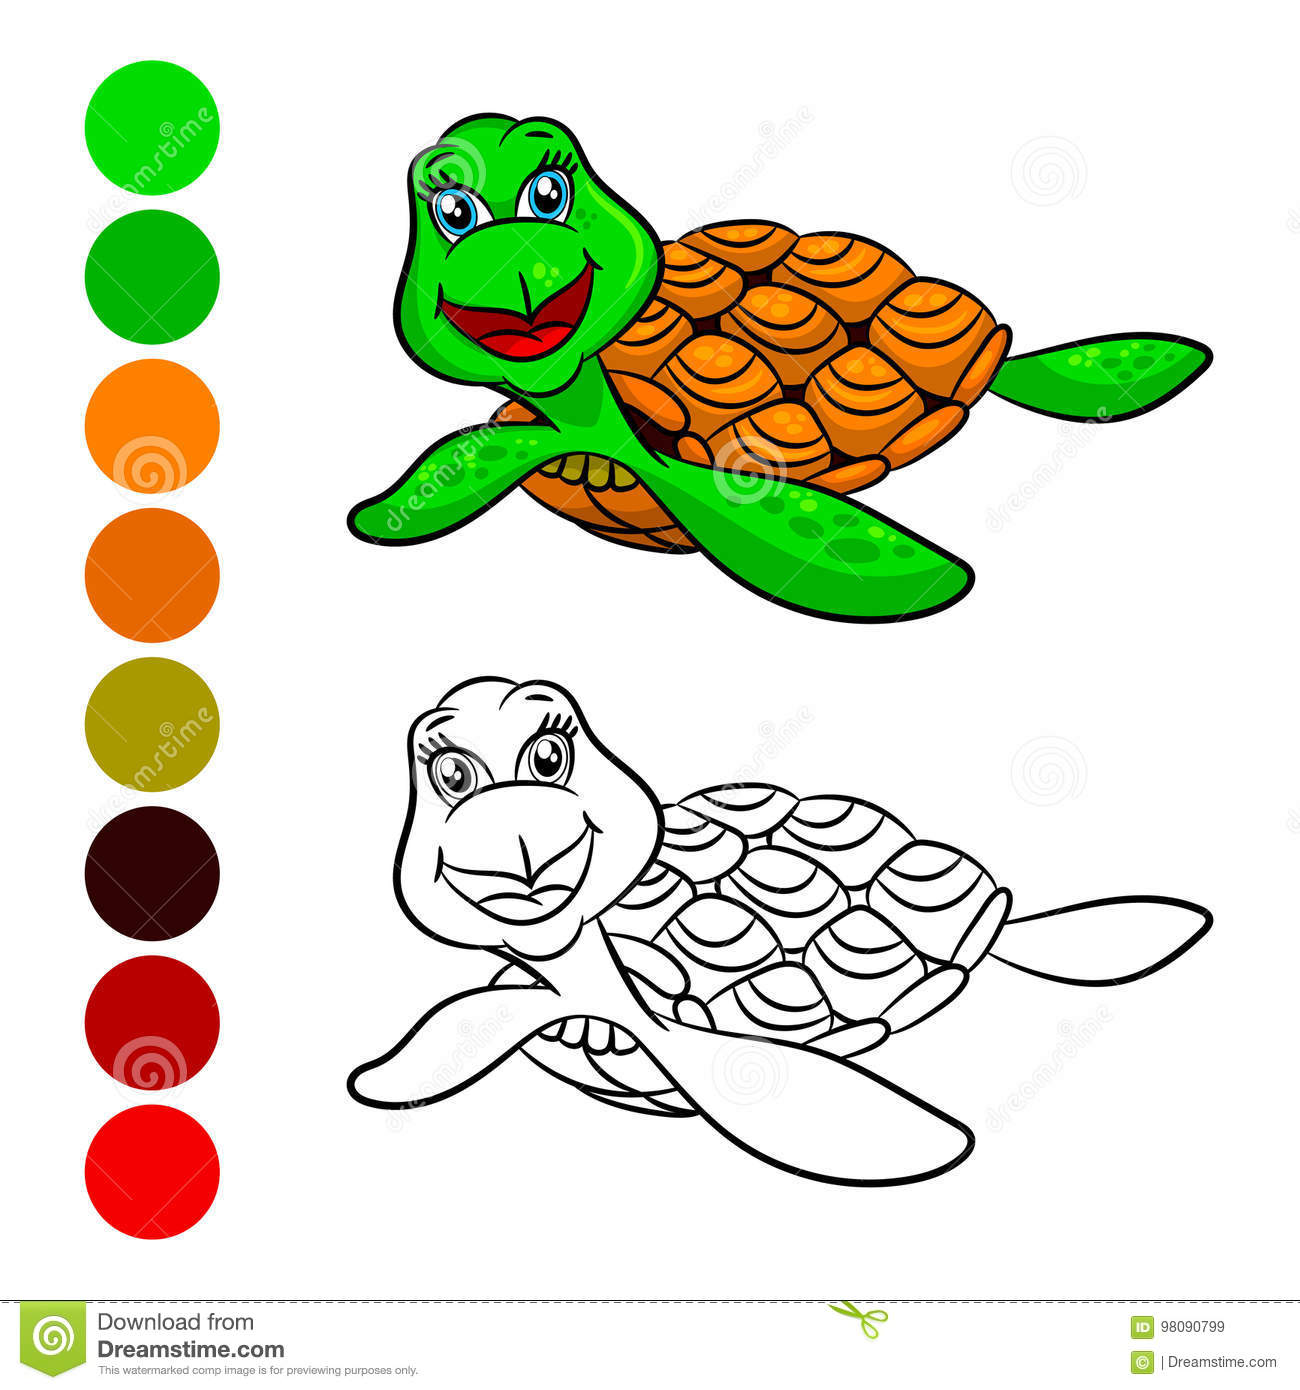 Turtles Coloring Book Stock Vector Illustration Of Color